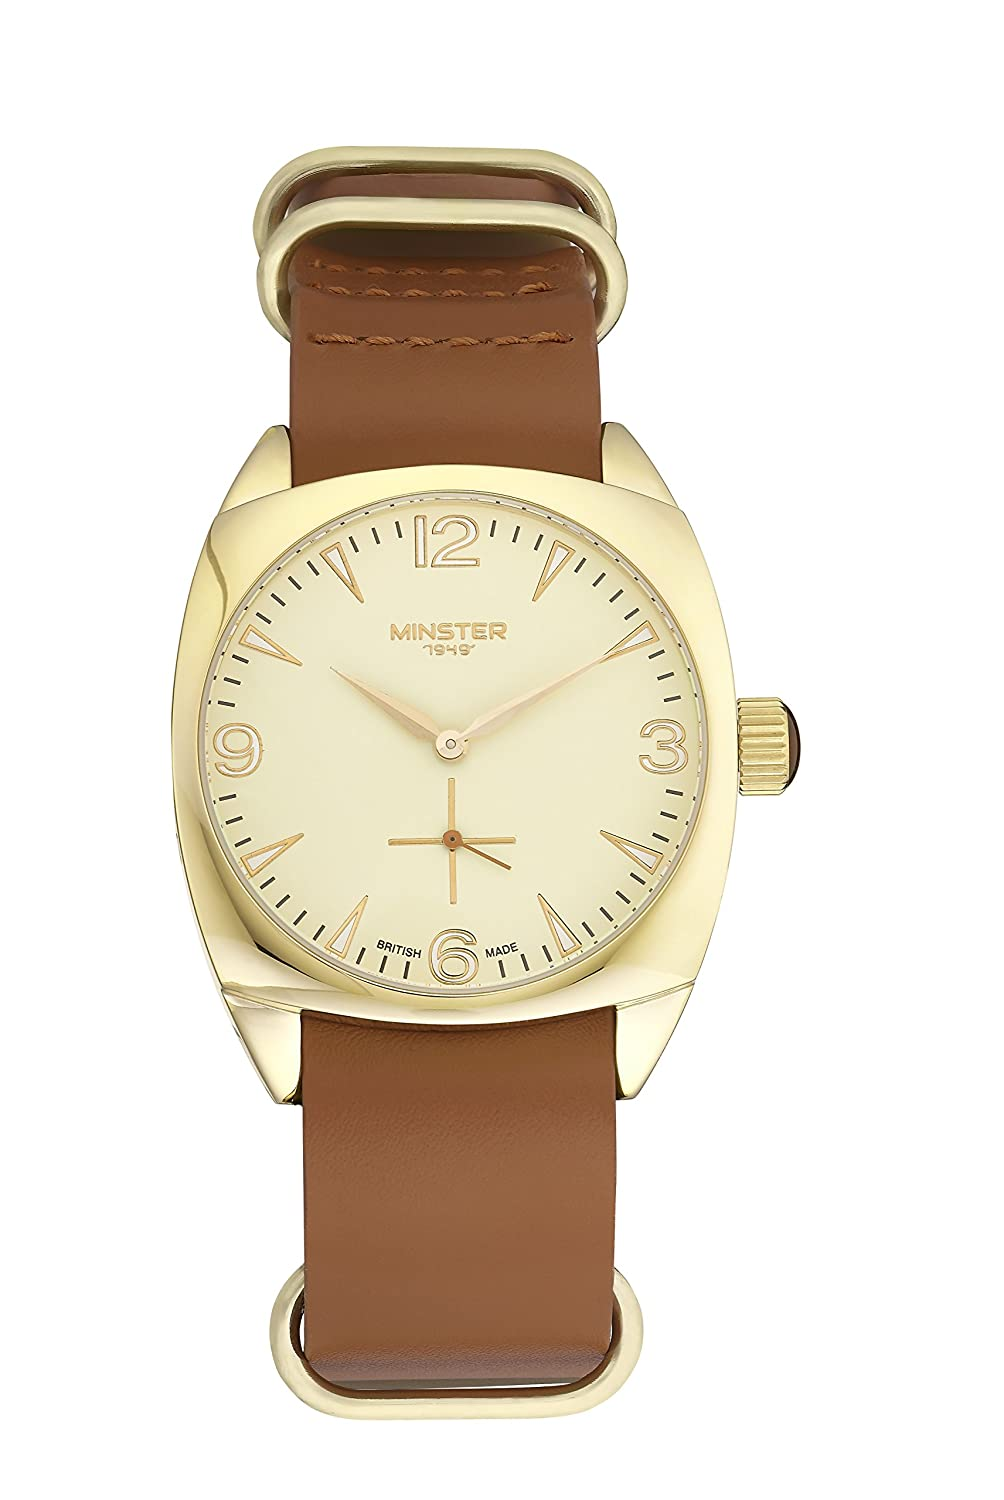 Tiffany Burlingham Uhr Gold Zifferblatt braun Leder Military Strap | British Made | MÜnster 1949